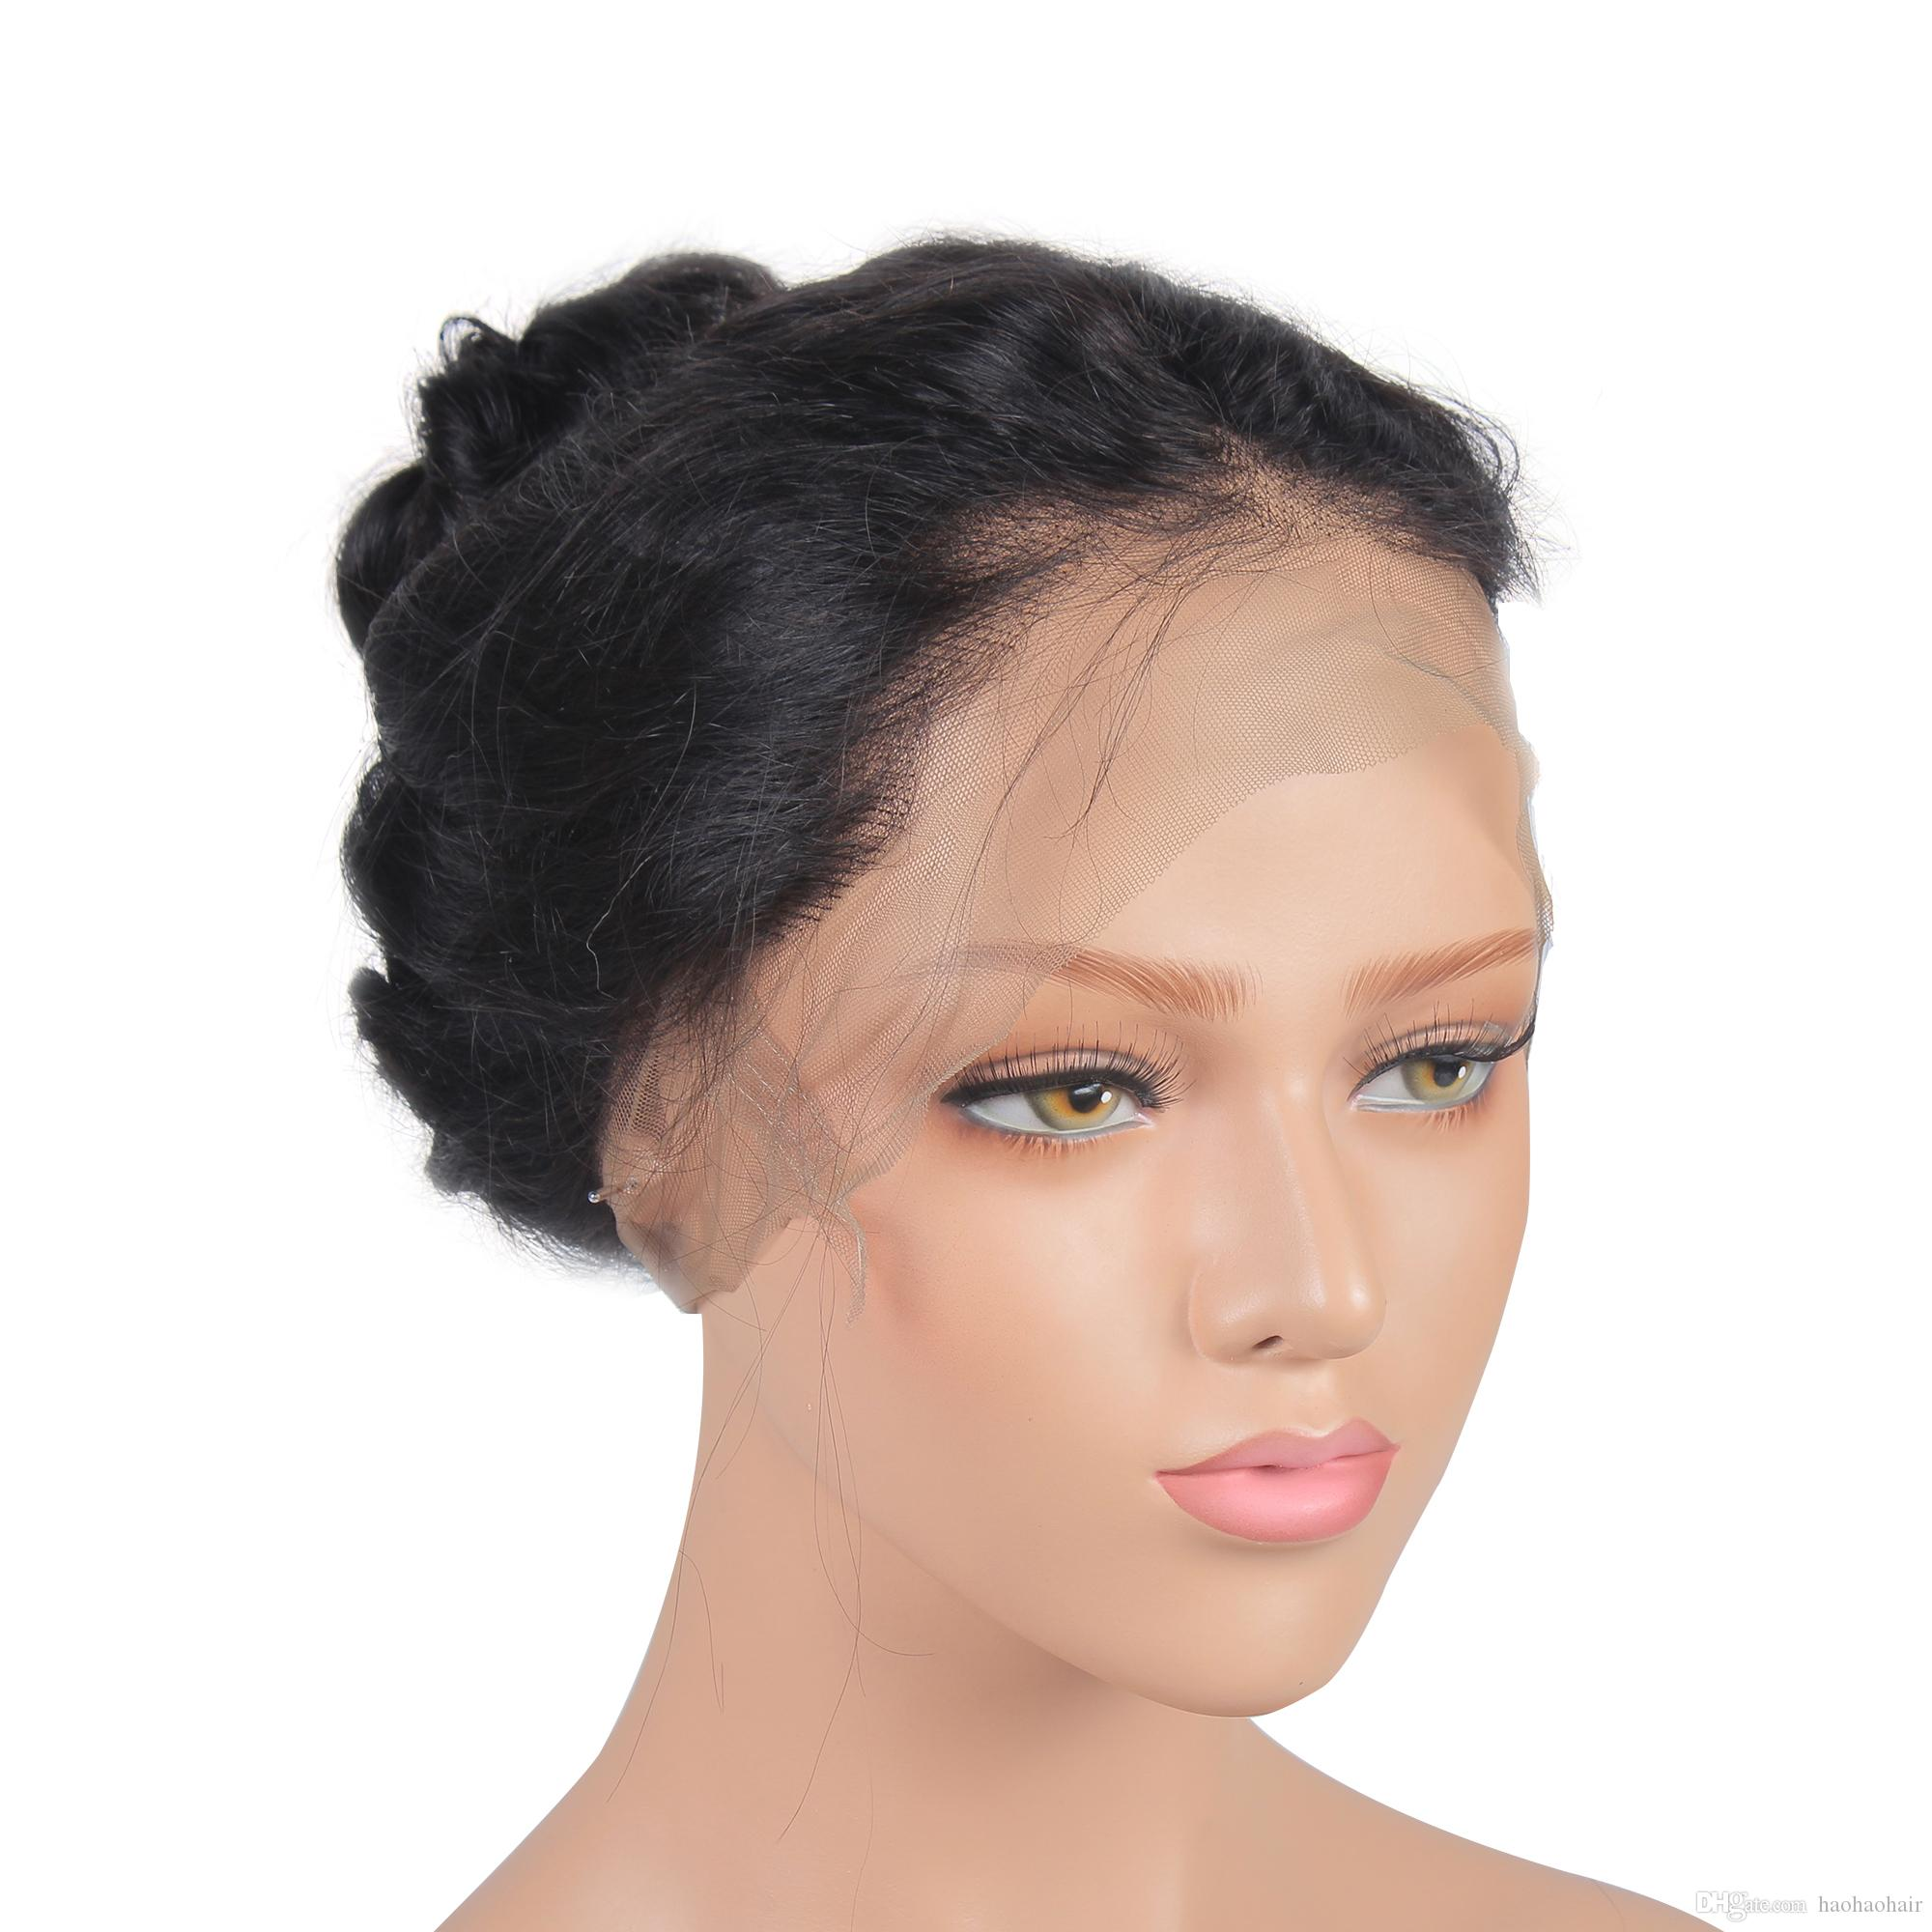 Human Hair Lace Front Wigs Full Lace Human Hair Wigs 360 Wig Glueless Swiss Lace High Quality Free Shipping